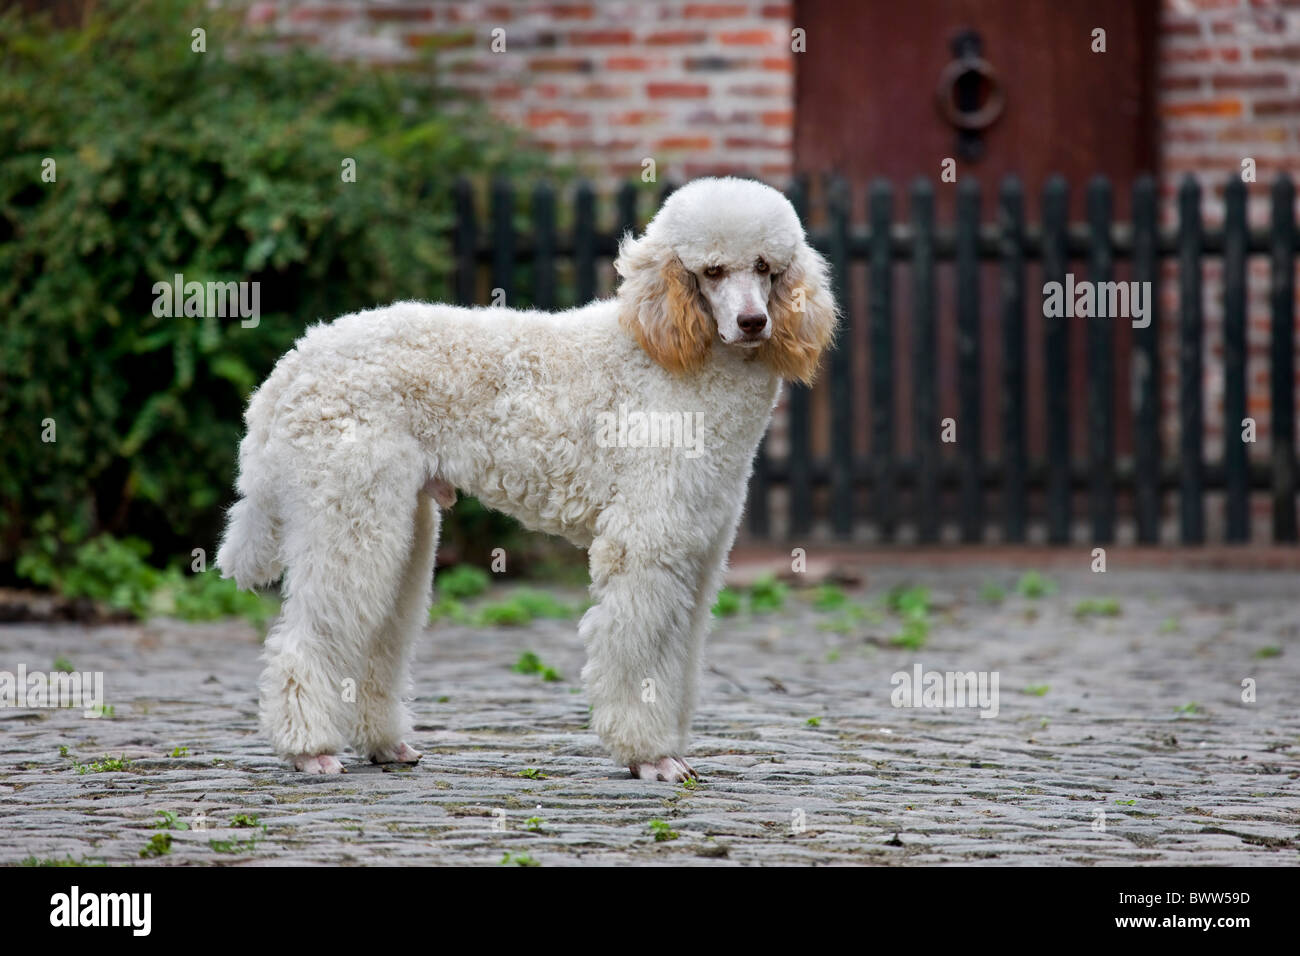 Standard poodle (Canis lupus familiaris) in garden in front of house - Stock Image